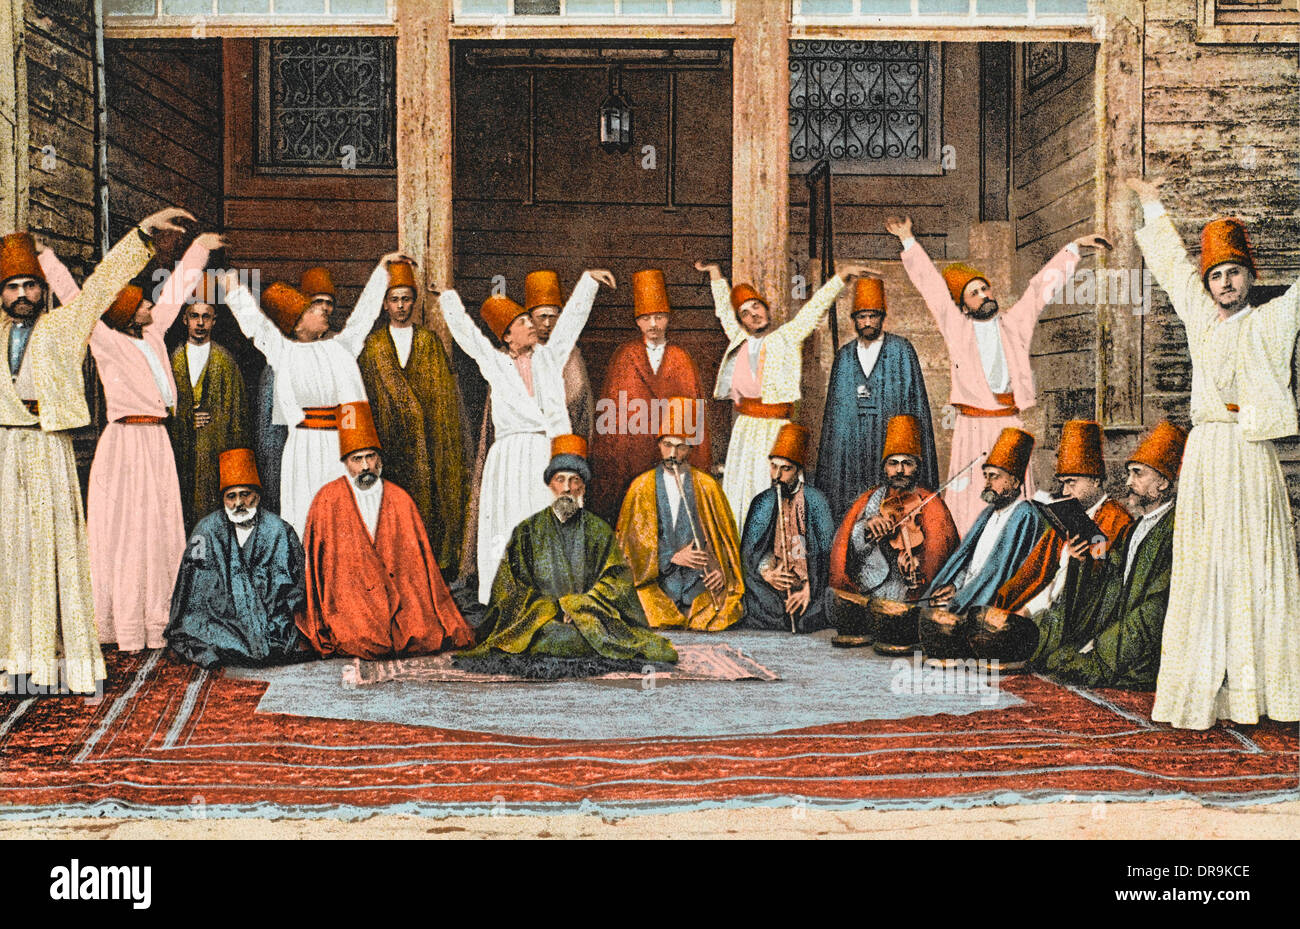 Group of Mevlevi Dervishes - Istanbul (colourised) - Stock Image